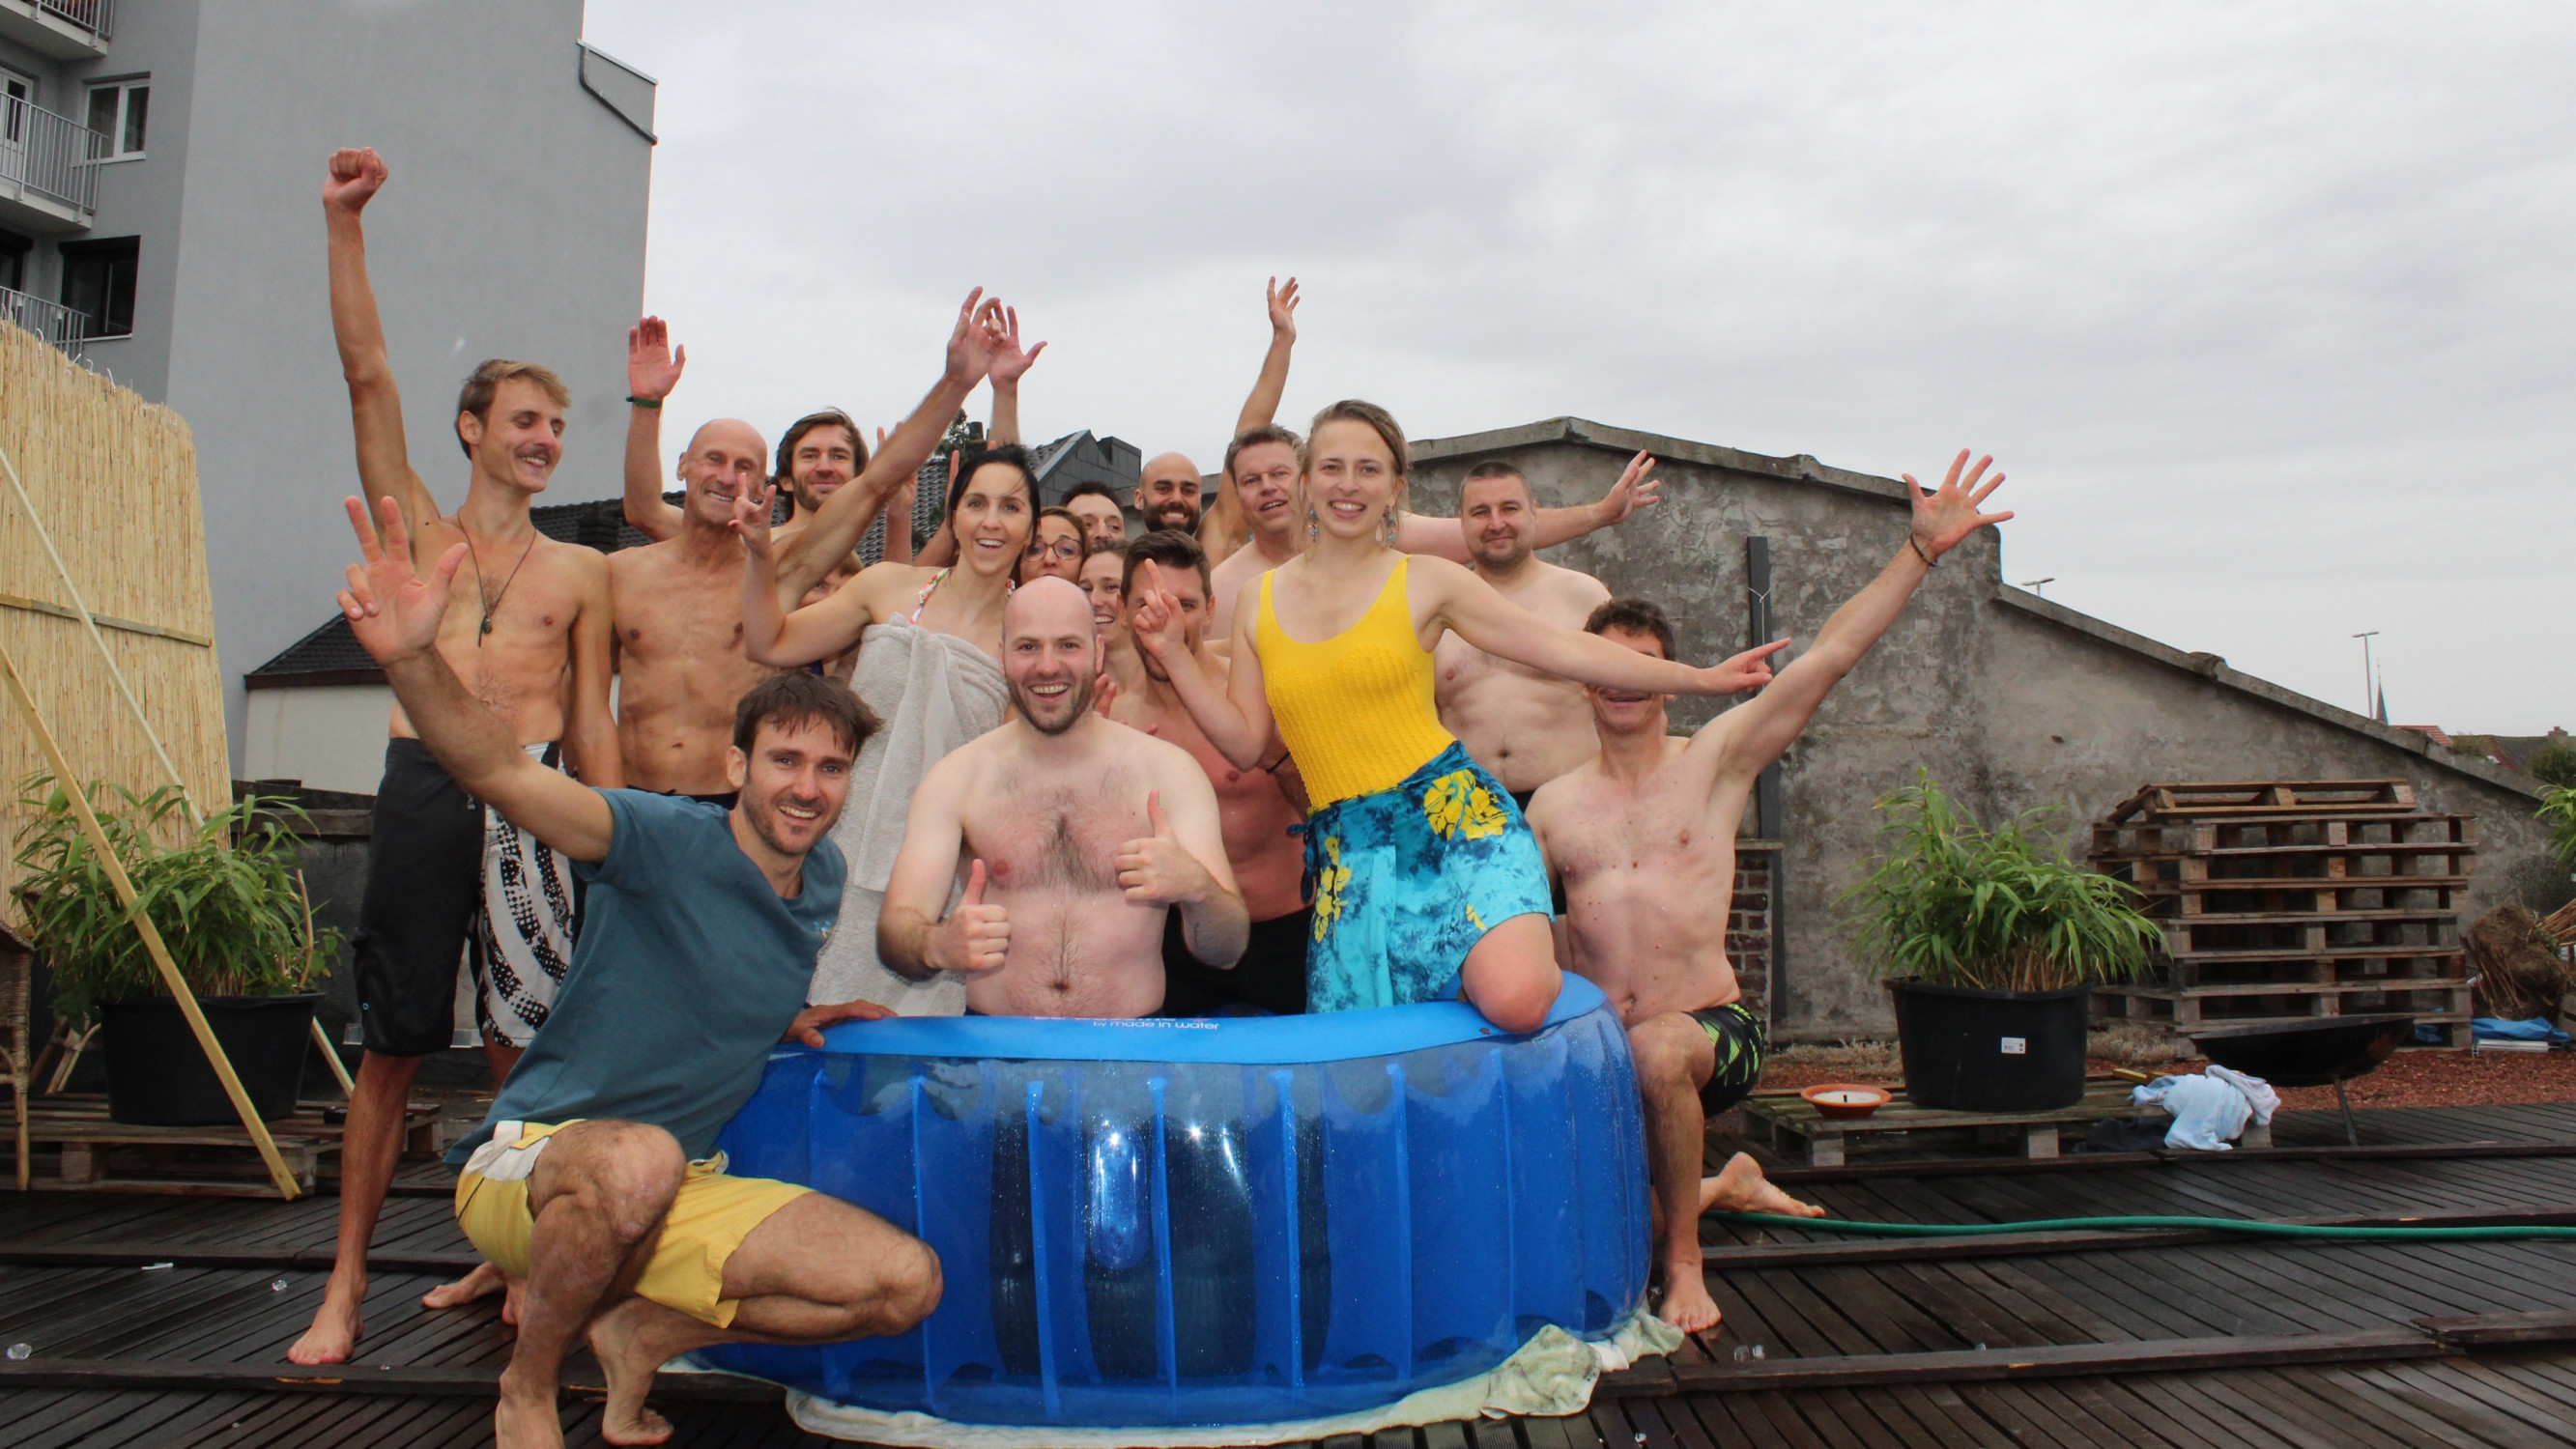 Image 5 of 17 - Experience the Wim Hof Method to get an impression of  at